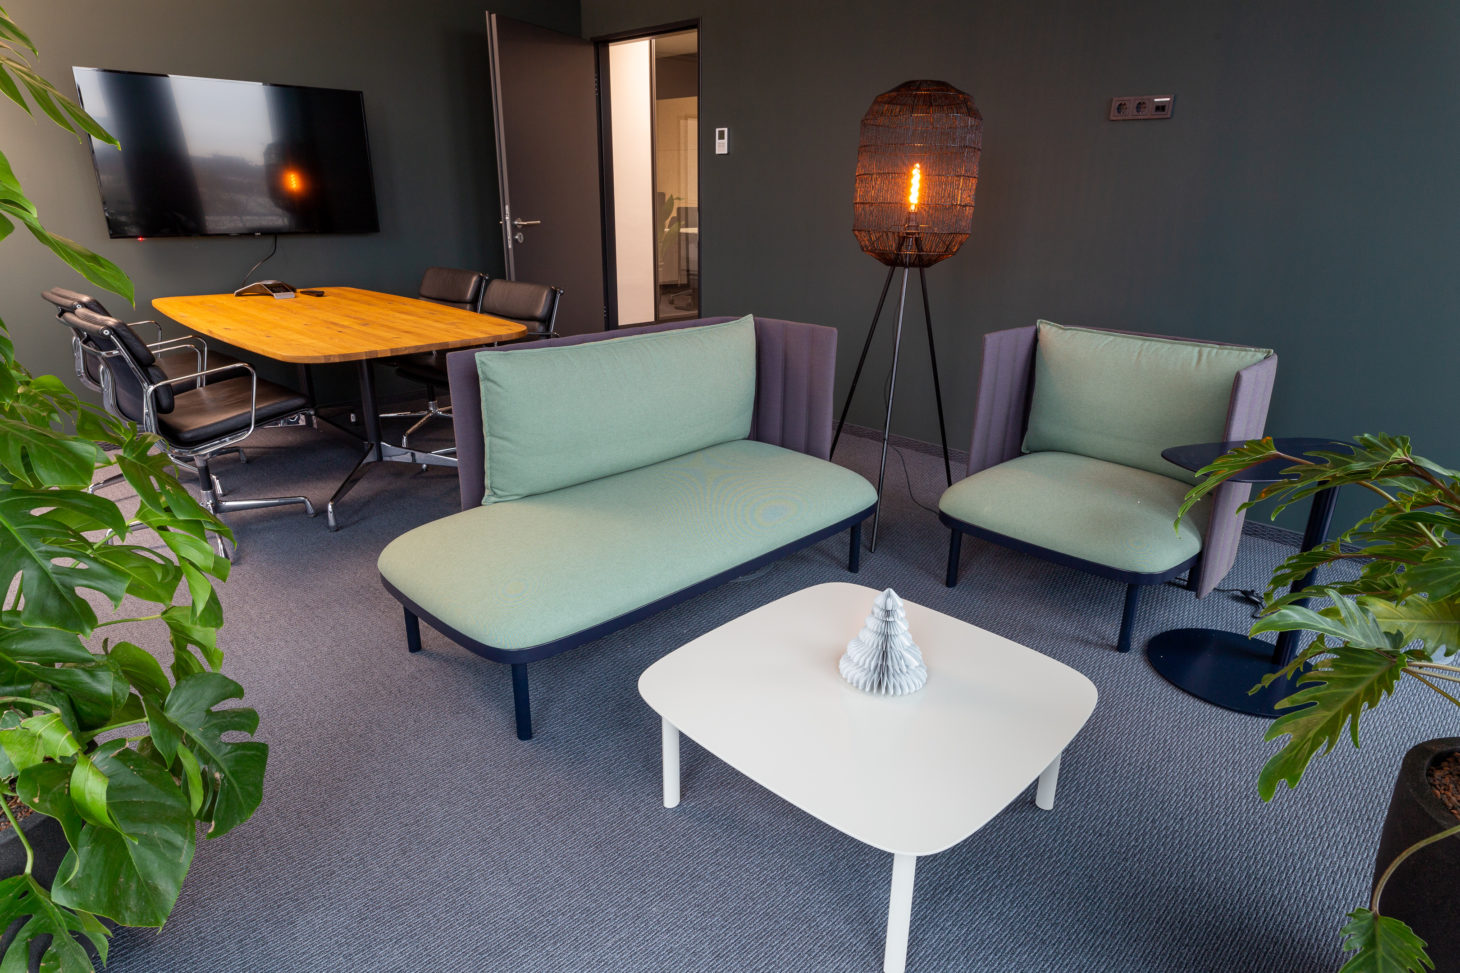 Picture of a conference room, valantic Supply Chain Excellence Munich branch